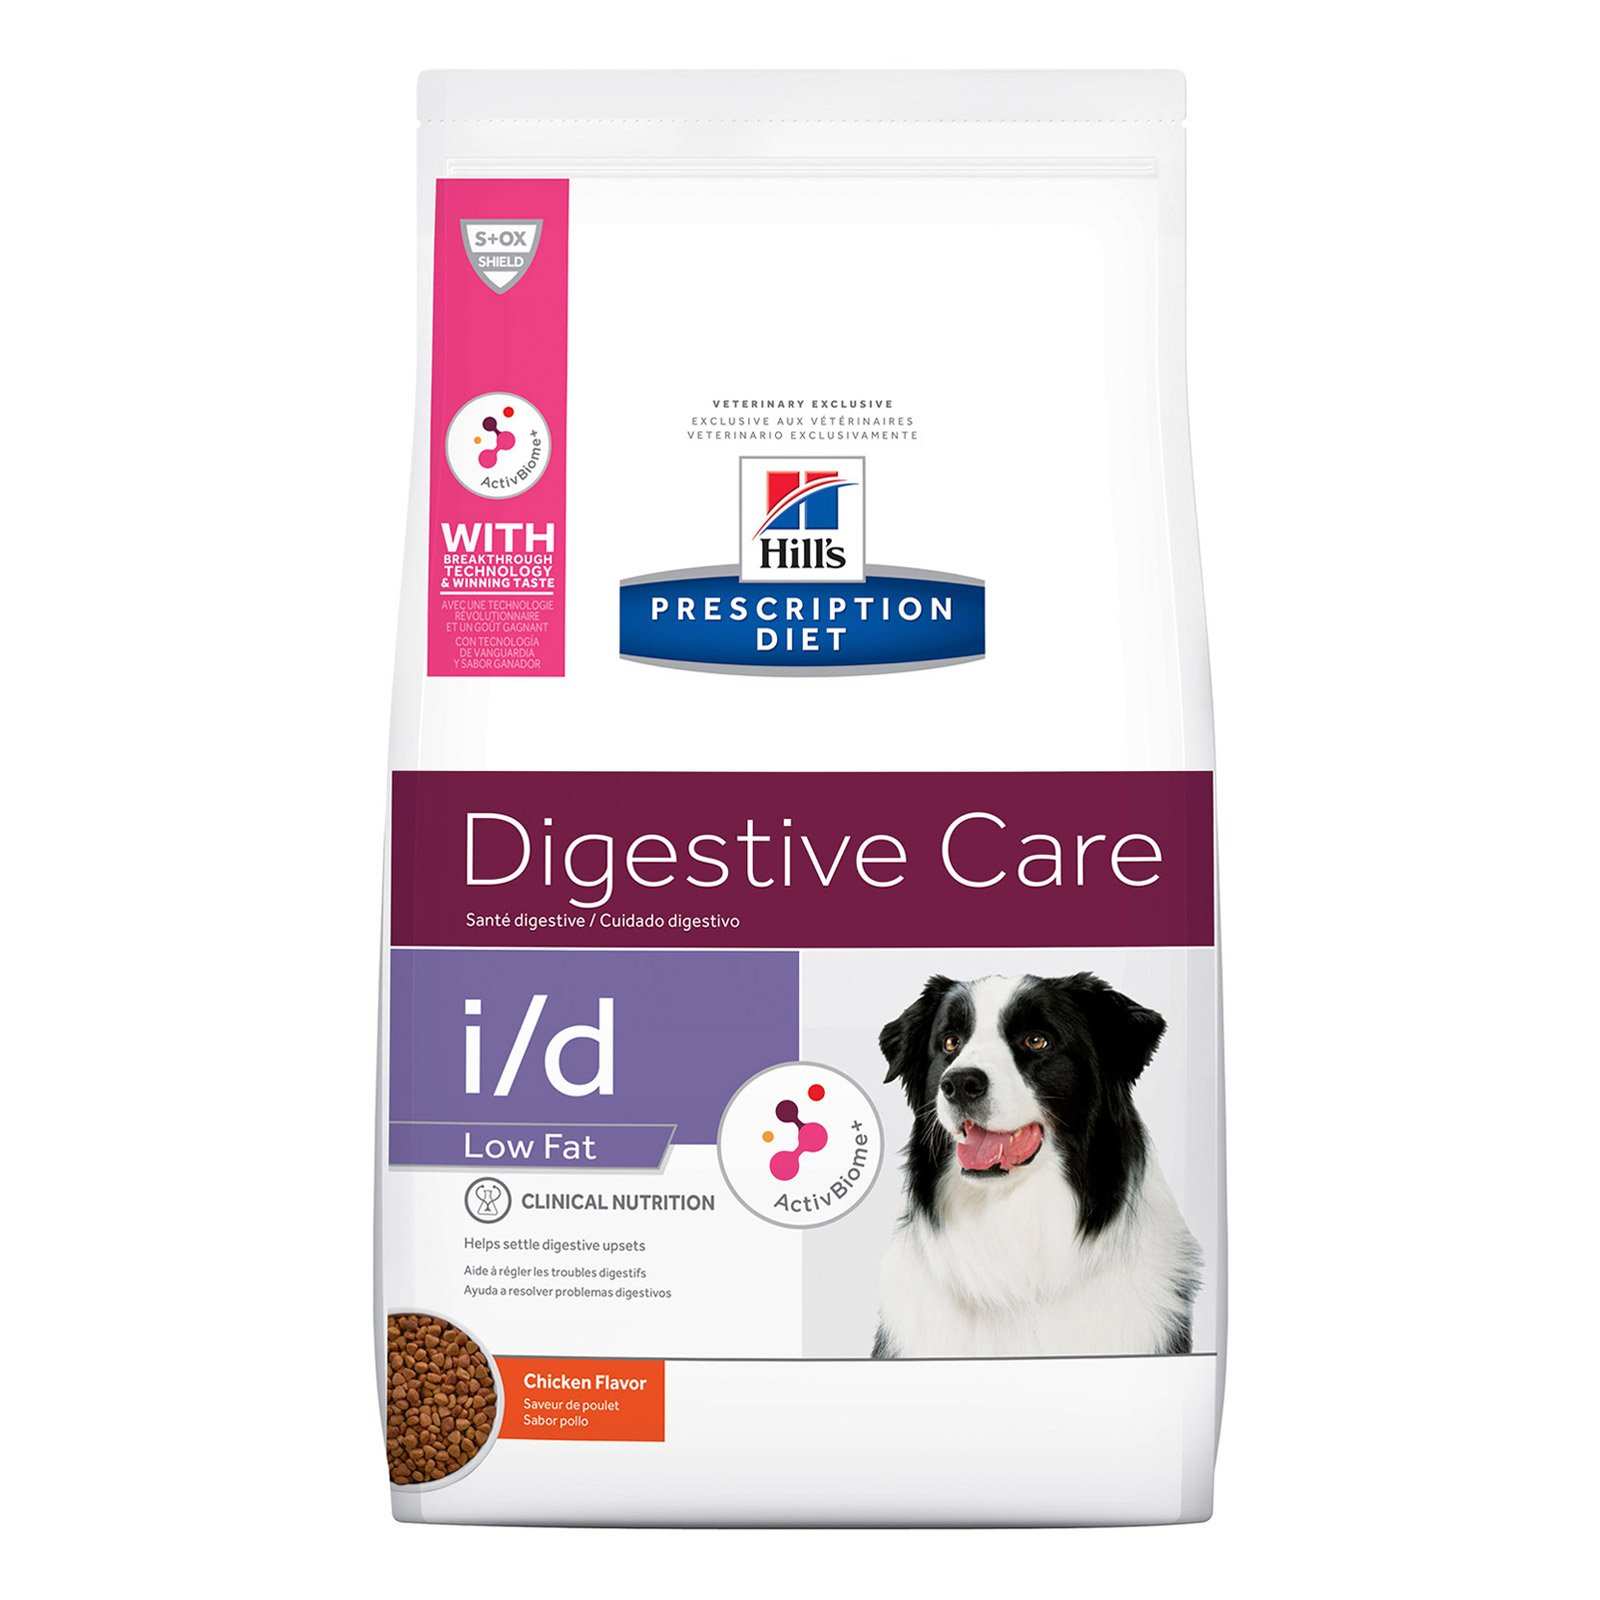 Hills-Prescription-Diet-id-Low-Fat-Digestive-Care-Canine.jpg